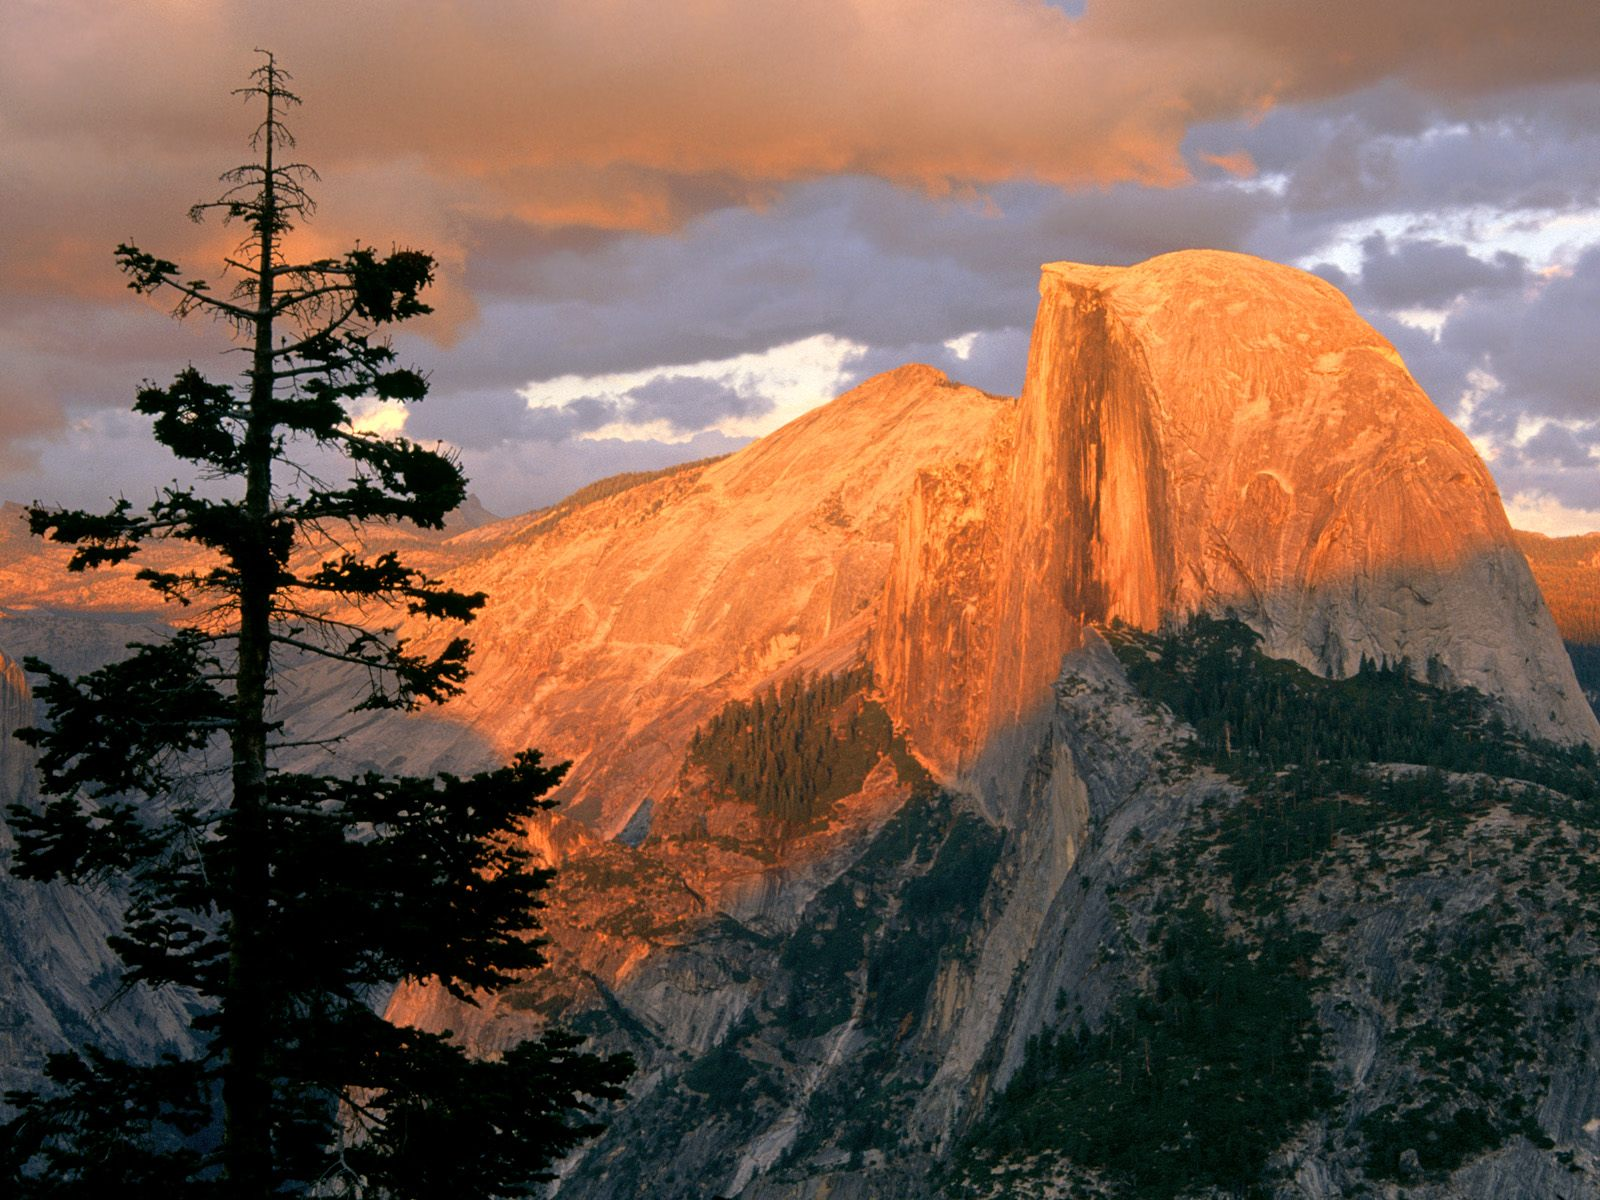 half_dome_at_sunset_from_glacier_point.jpg